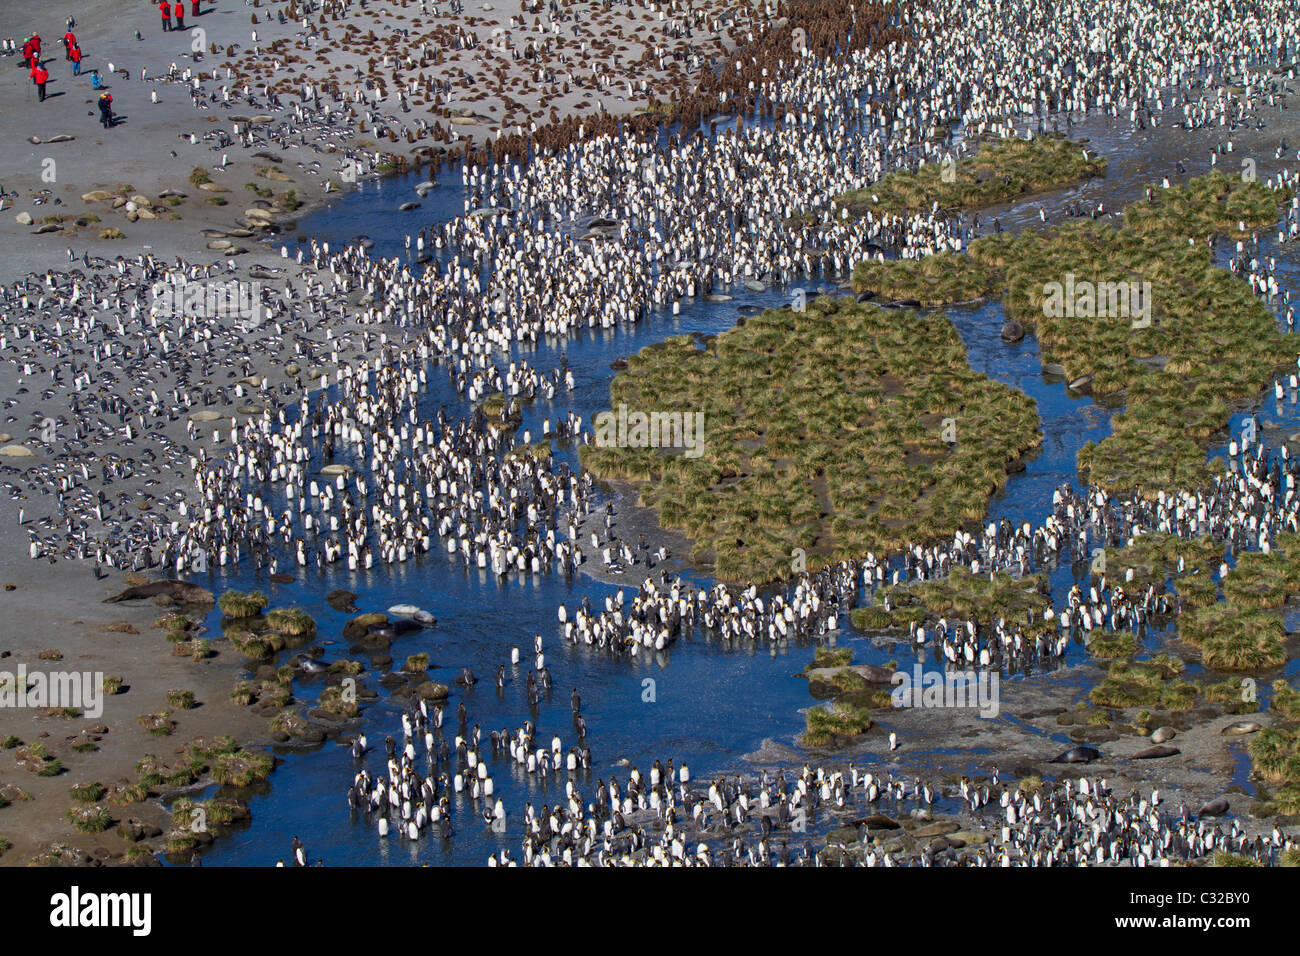 Aerial view of the massive king penguin colony at Gold Harbour, South Georgia Island - Stock Image